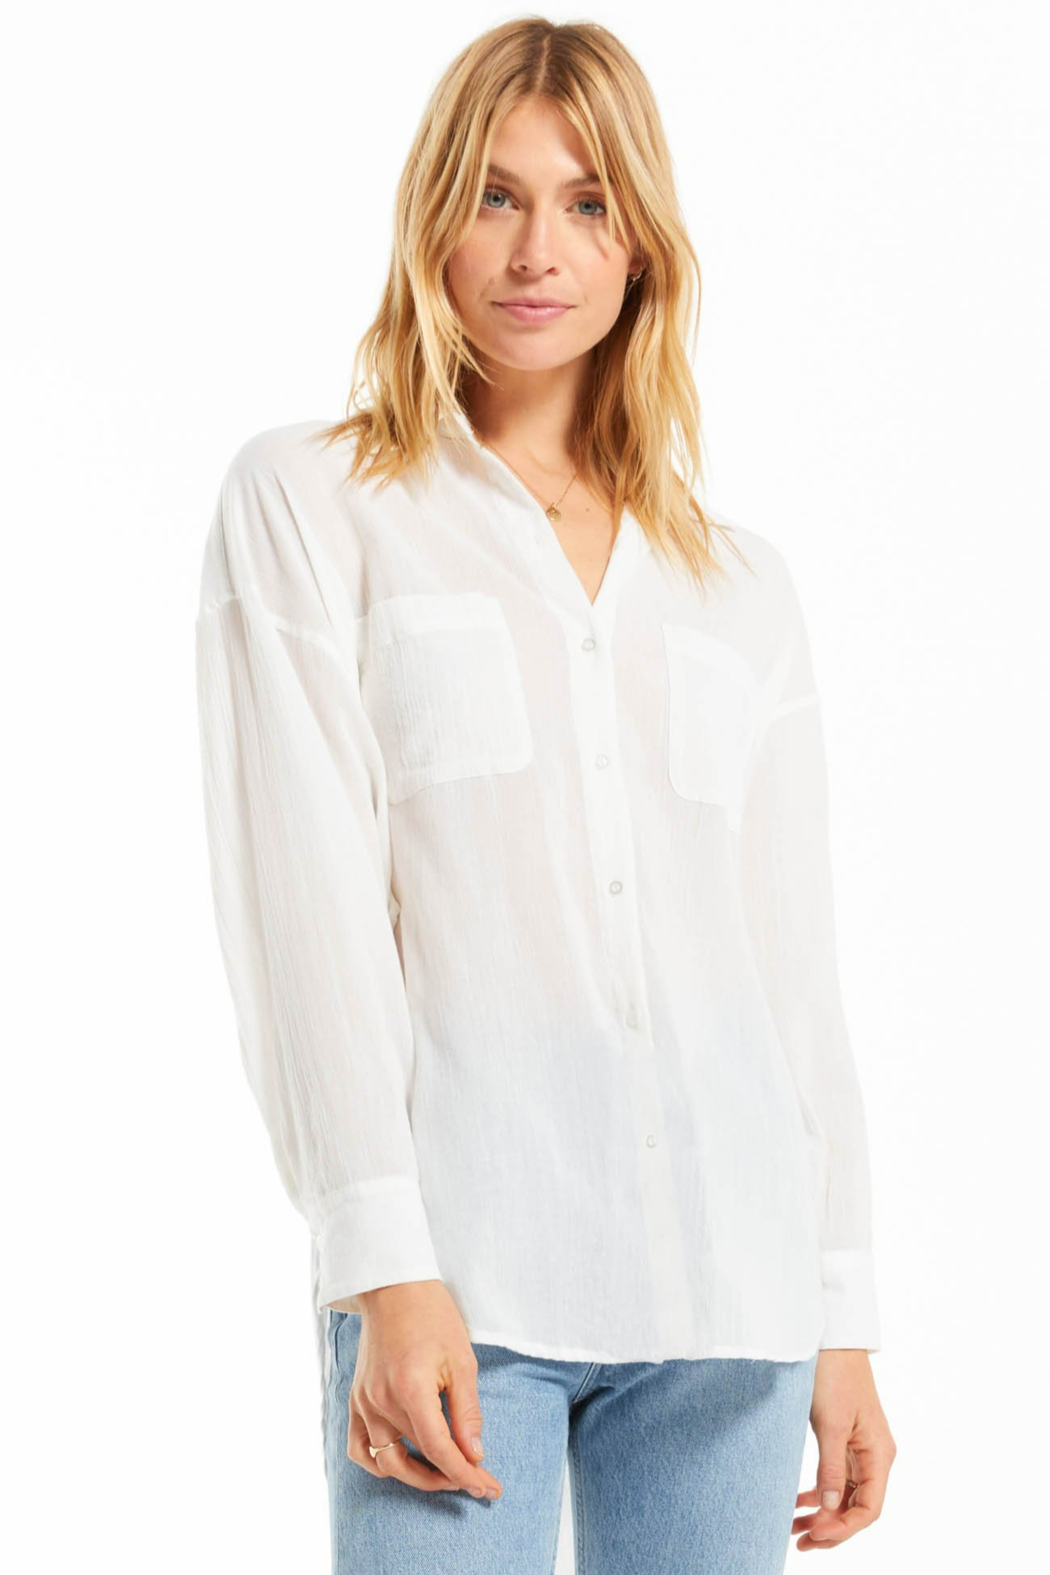 z supply Lalo Button Up Top - Front Full Image